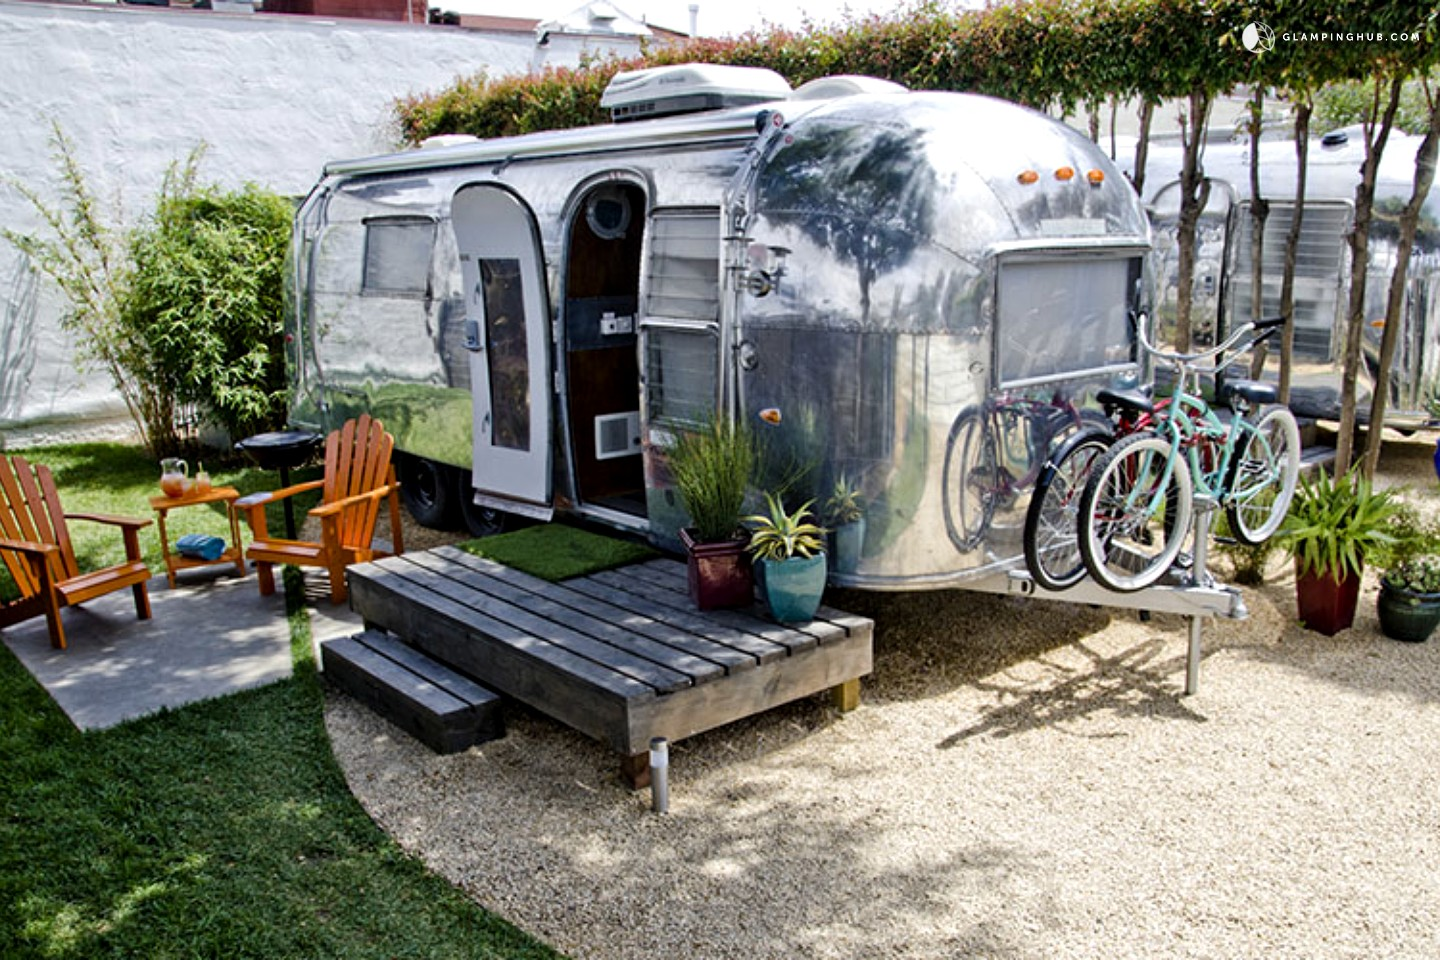 airstream trailers for rent near santa barbara ForAirstream Rentals Santa Barbara